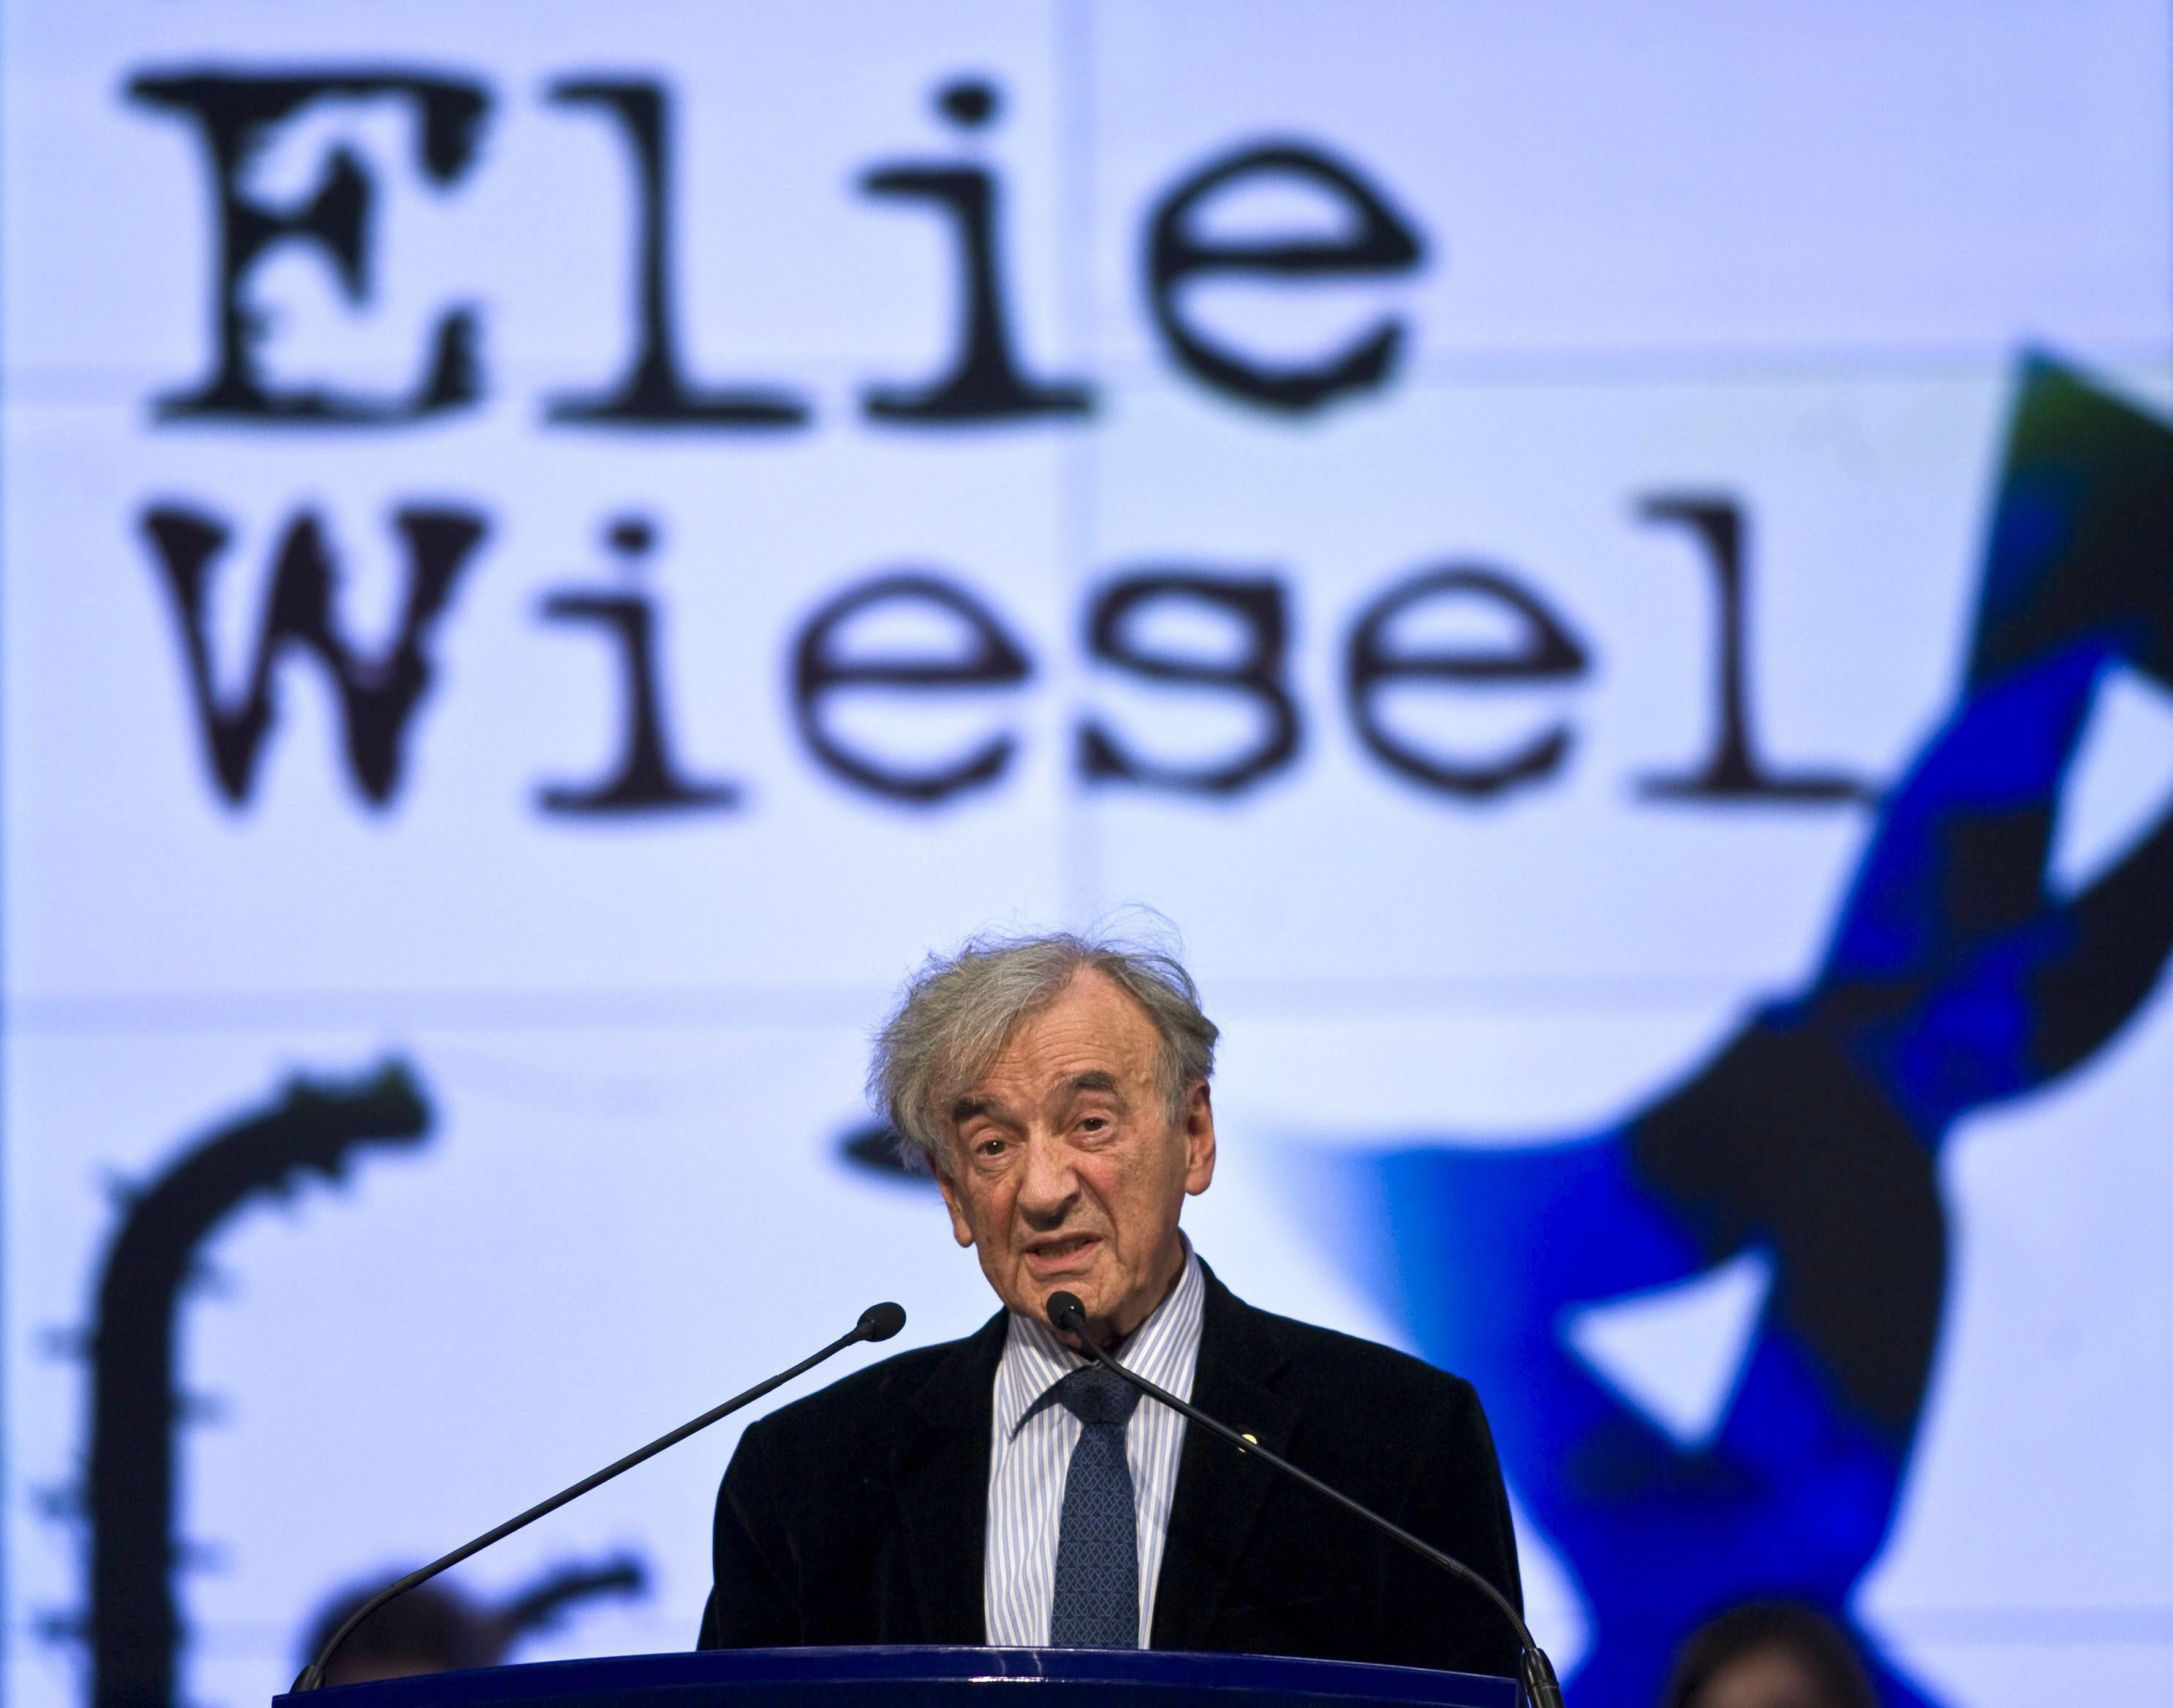 elie wiesel essay prize In 1986, at the age of fifty-eight, romanian-born jewish-american writer and political activist elie wiesel (september 30, 1928–july 2, 2016) was awarded the nobel.